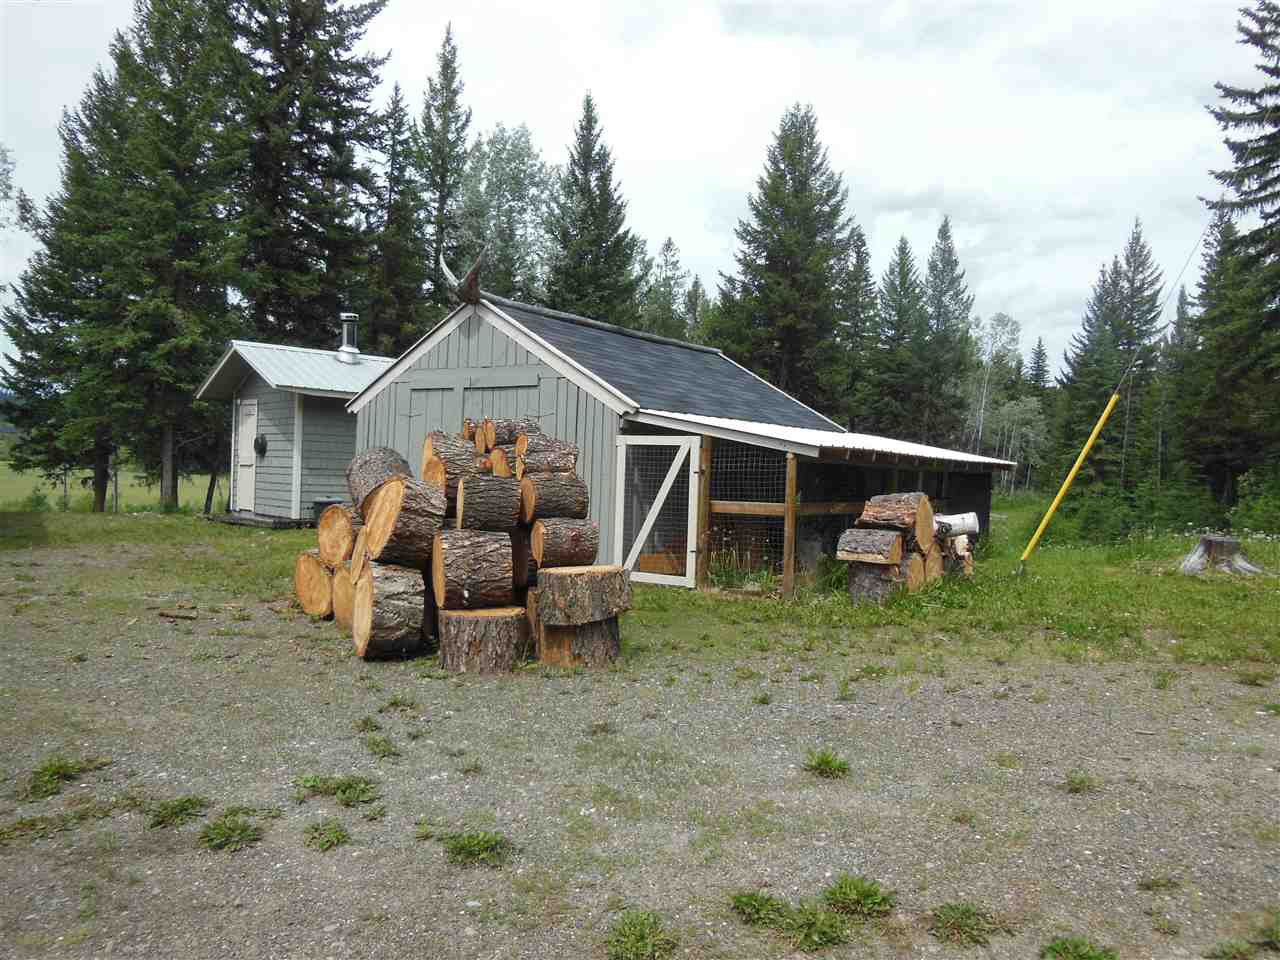 Photo 25: Photos: 3535 WESTWICK PIT Road: 150 Mile House House for sale (Williams Lake (Zone 27))  : MLS®# R2488772